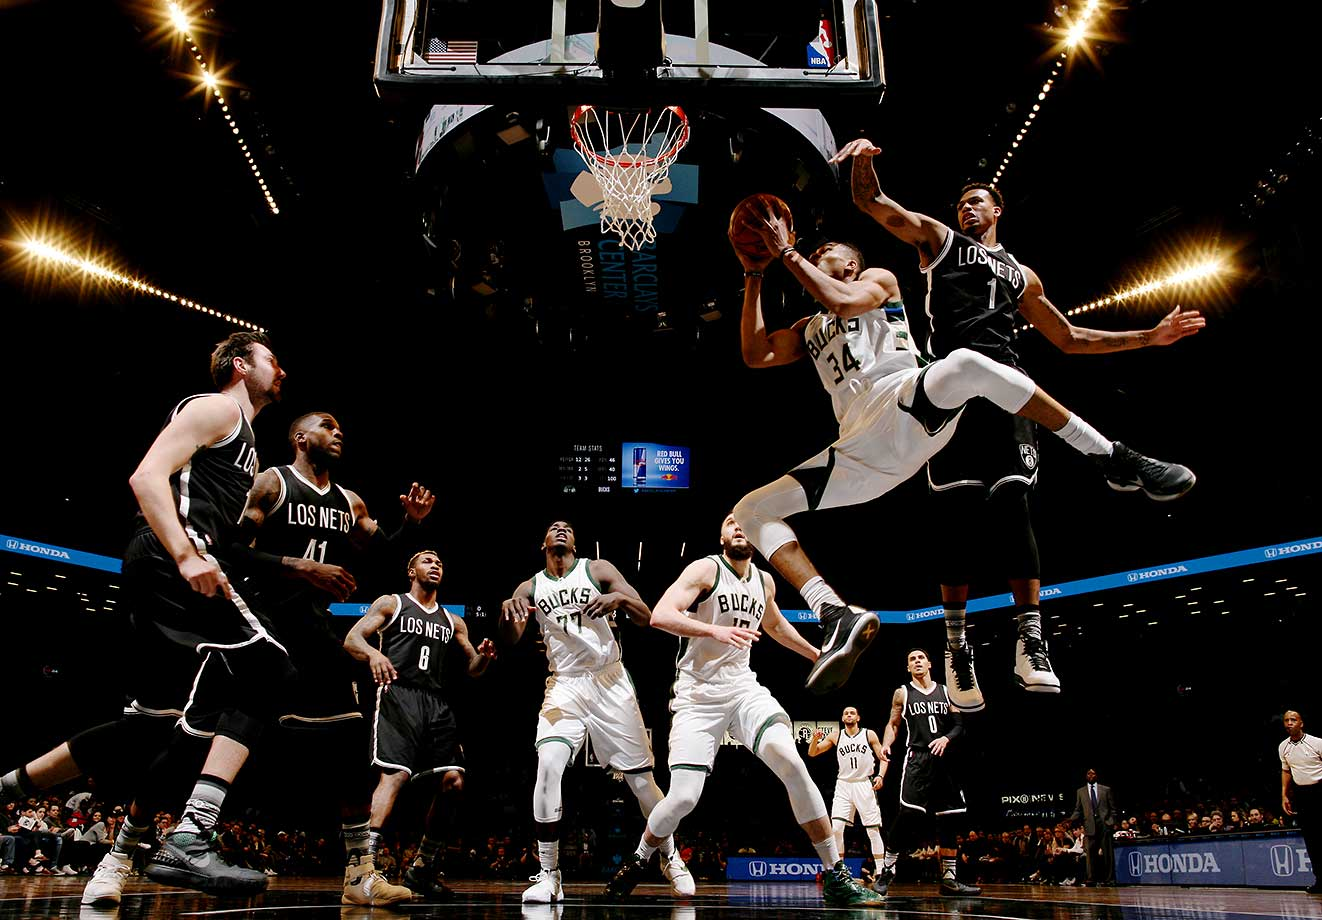 Giannis Antetokounmpo of the Milwaukee Bucks goes to the basket against the Brooklyn Nets.